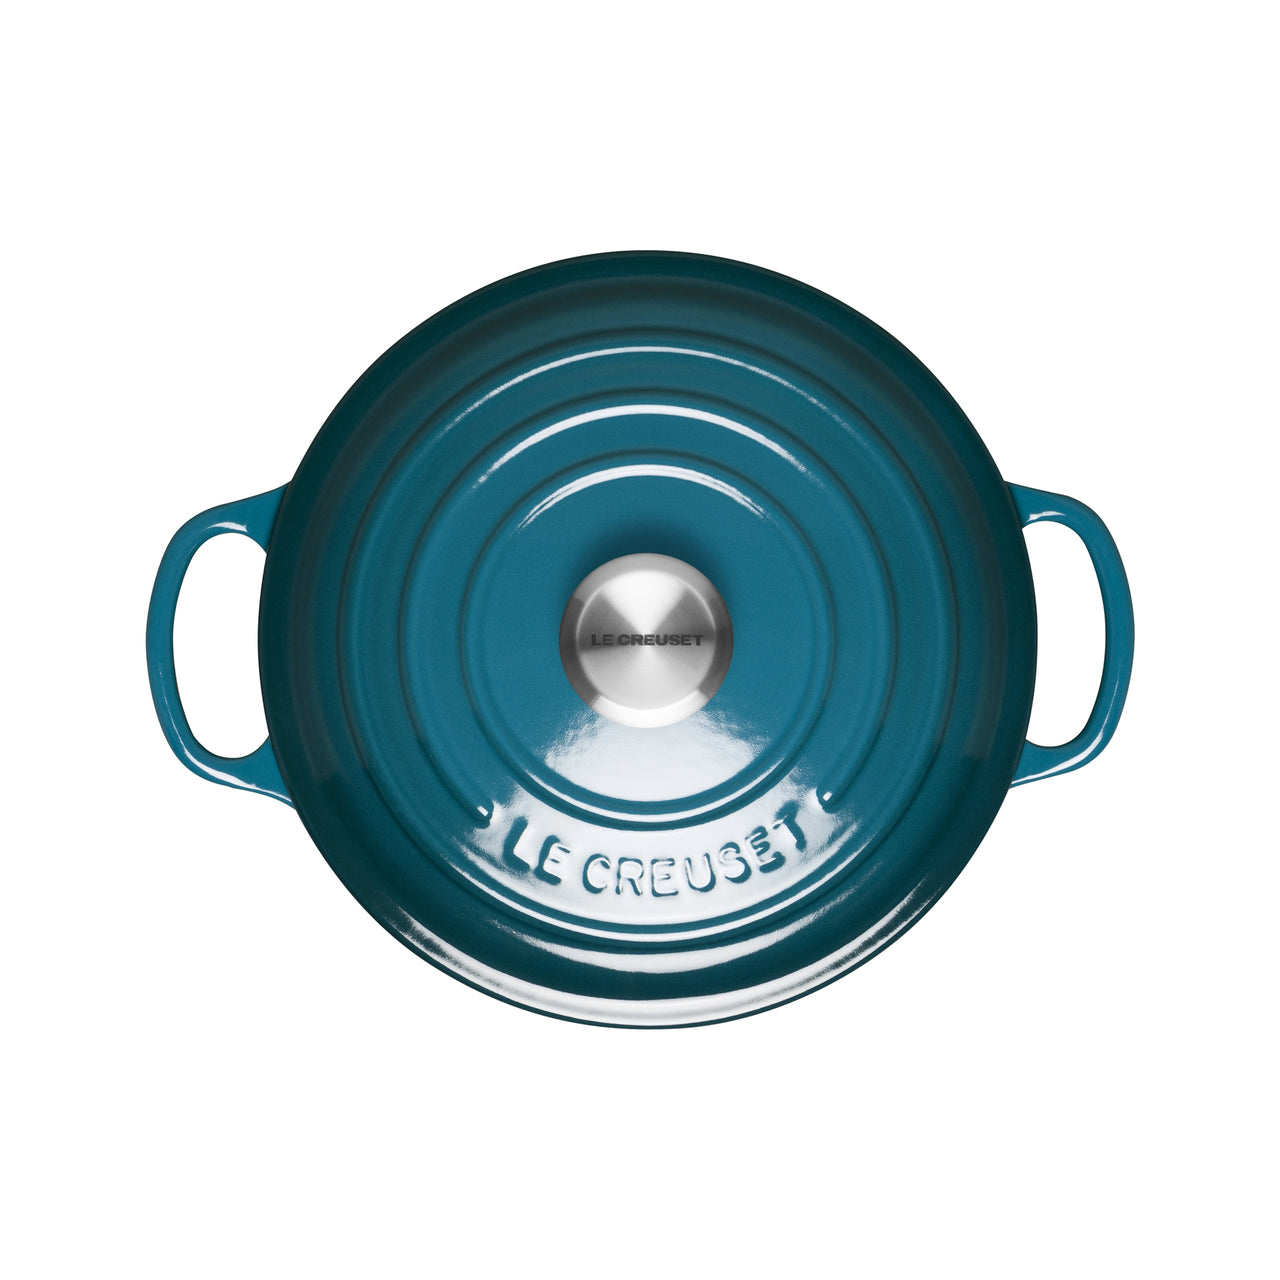 Le Creuset Signature Cast Iron Round Casseroles - Deep Teal